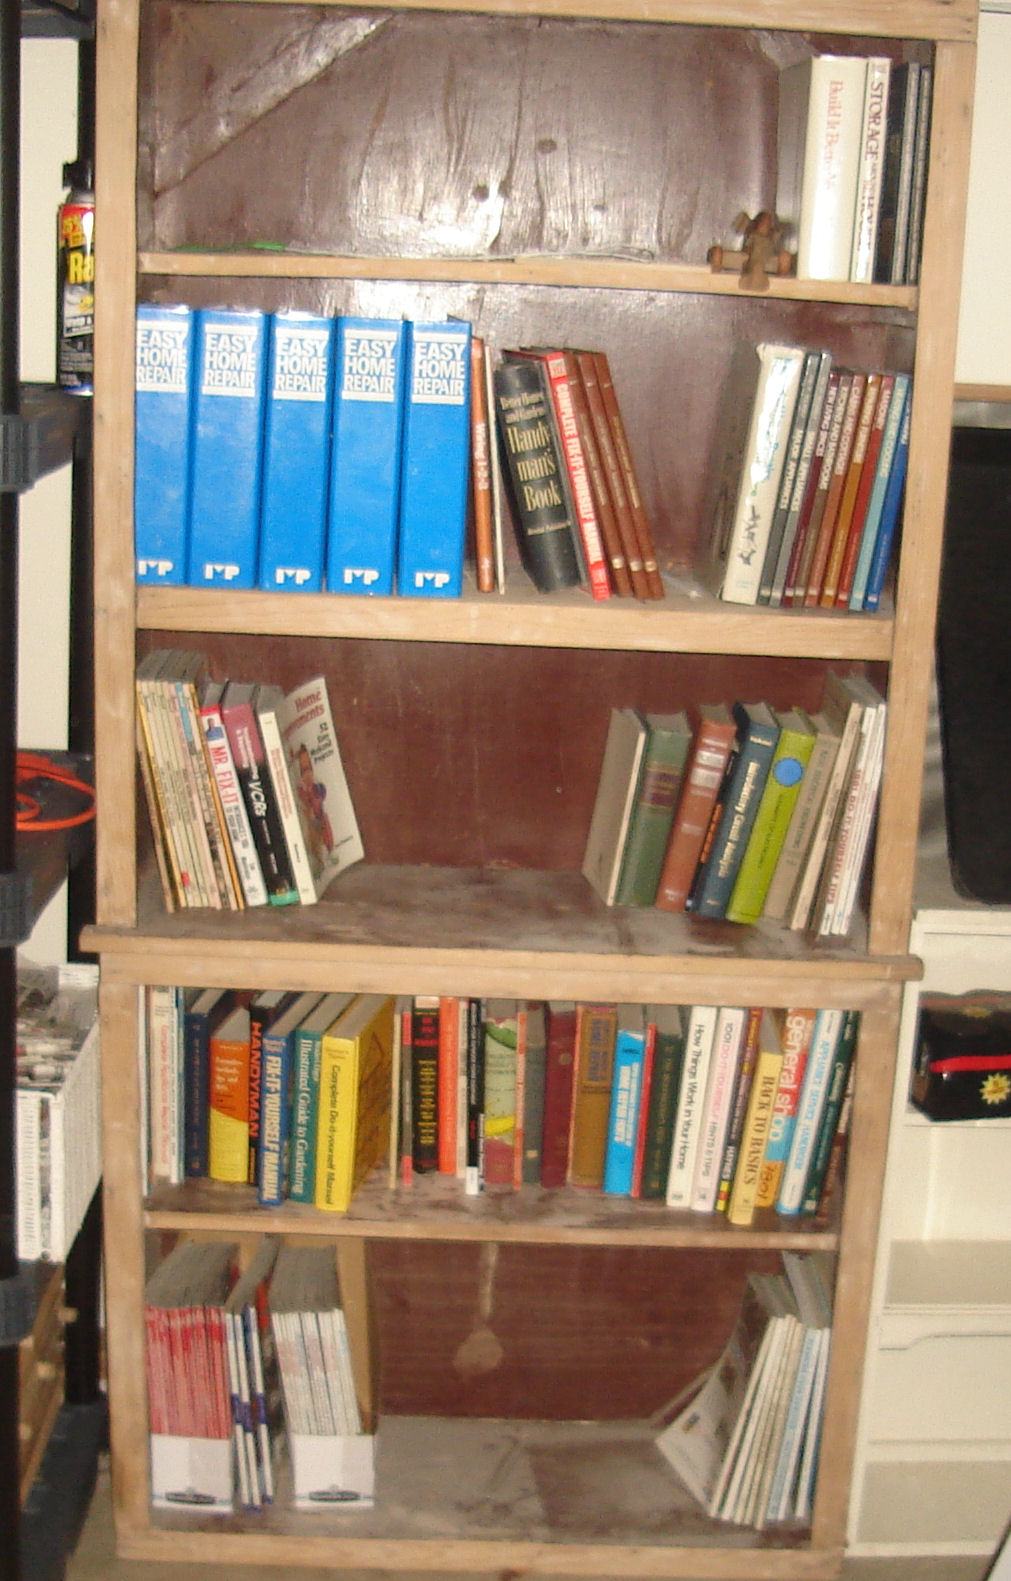 The books in the garage